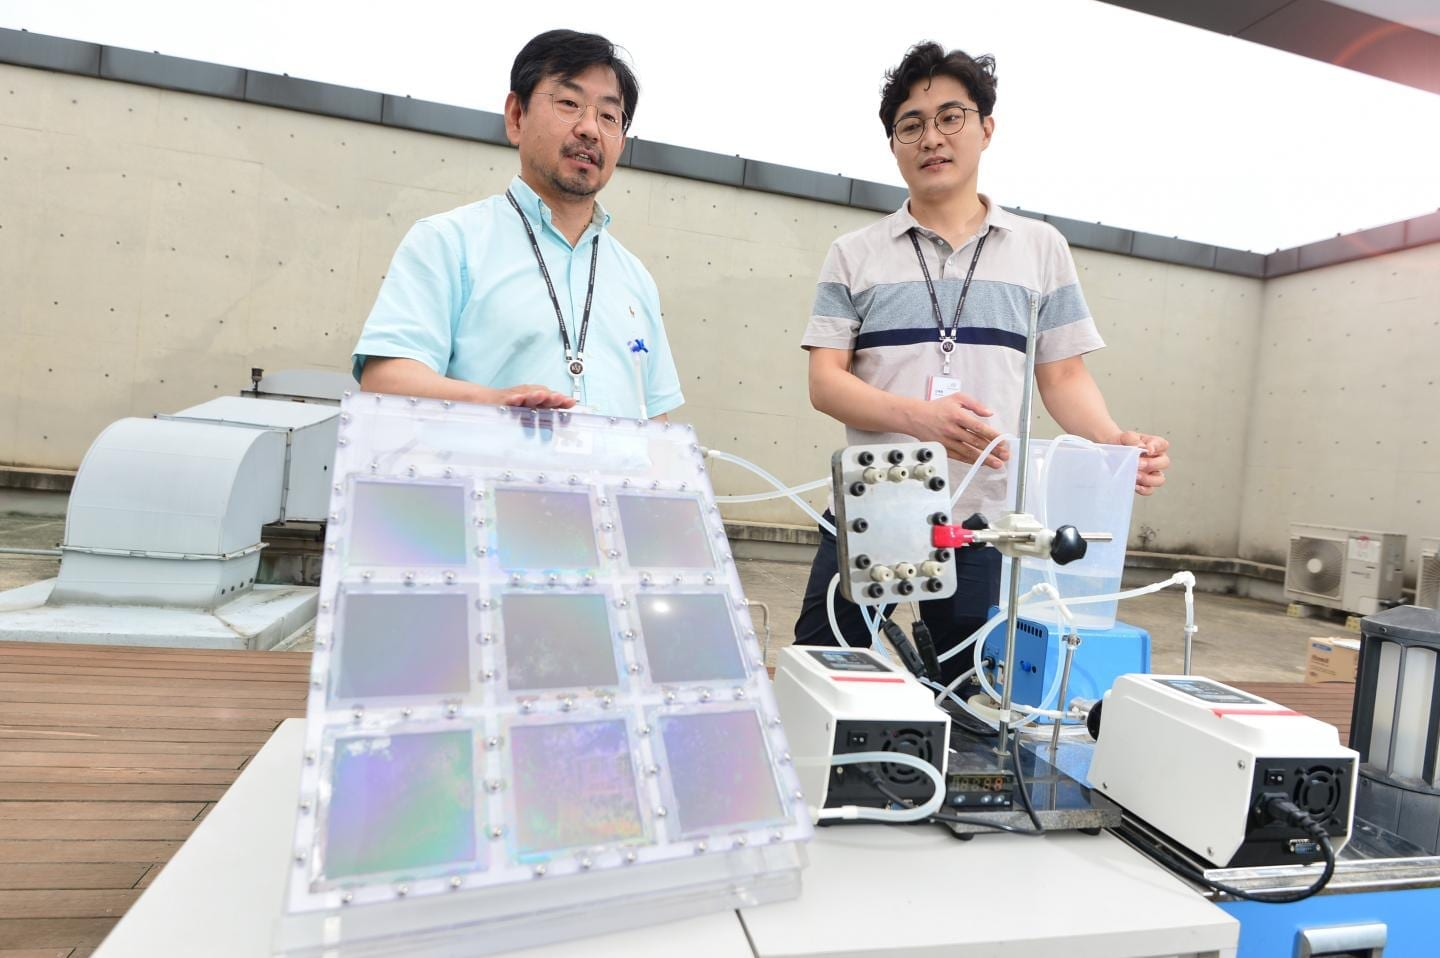 Through solar absorbers (9 panels, 5cm by 5cm in size), the team of Kyung-guen song are discussing the process of producing water at high efficiency with membrane distillation technology. CREDIT Korea Institue of Science and Technology (KIST)